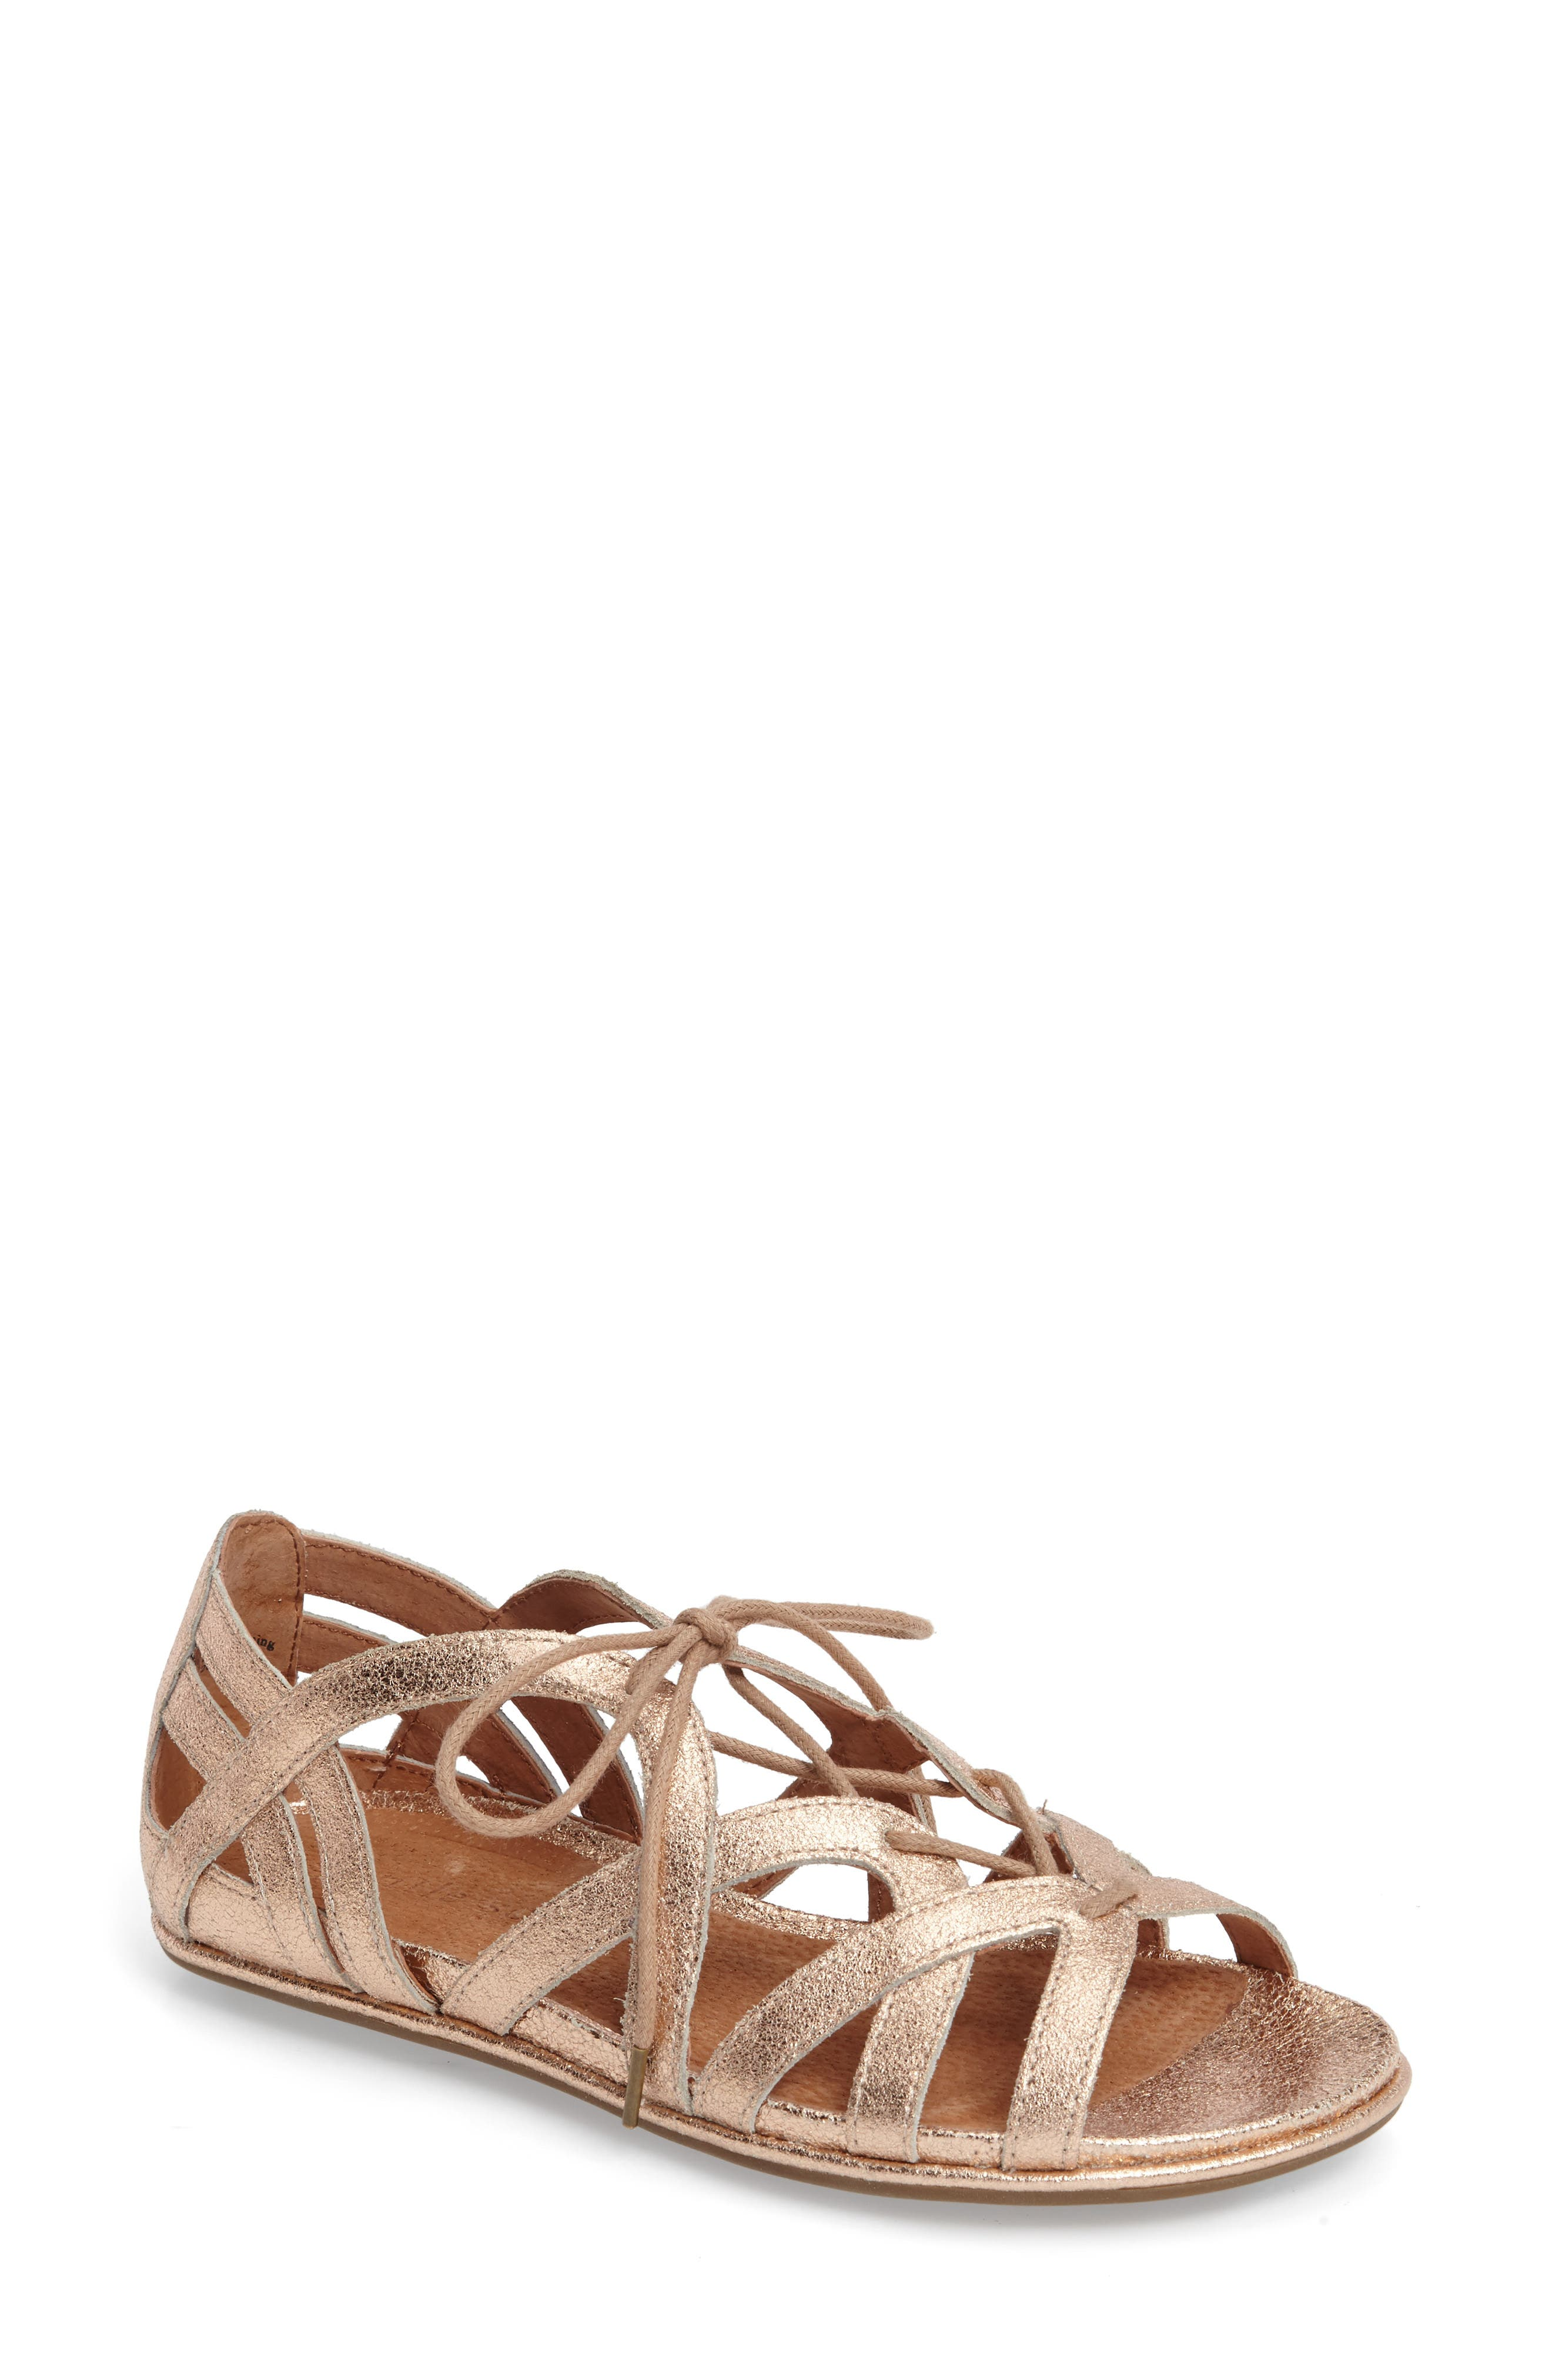 Orly Lace-Up Sandal,                             Main thumbnail 1, color,                             ROSE GOLD LEATHER